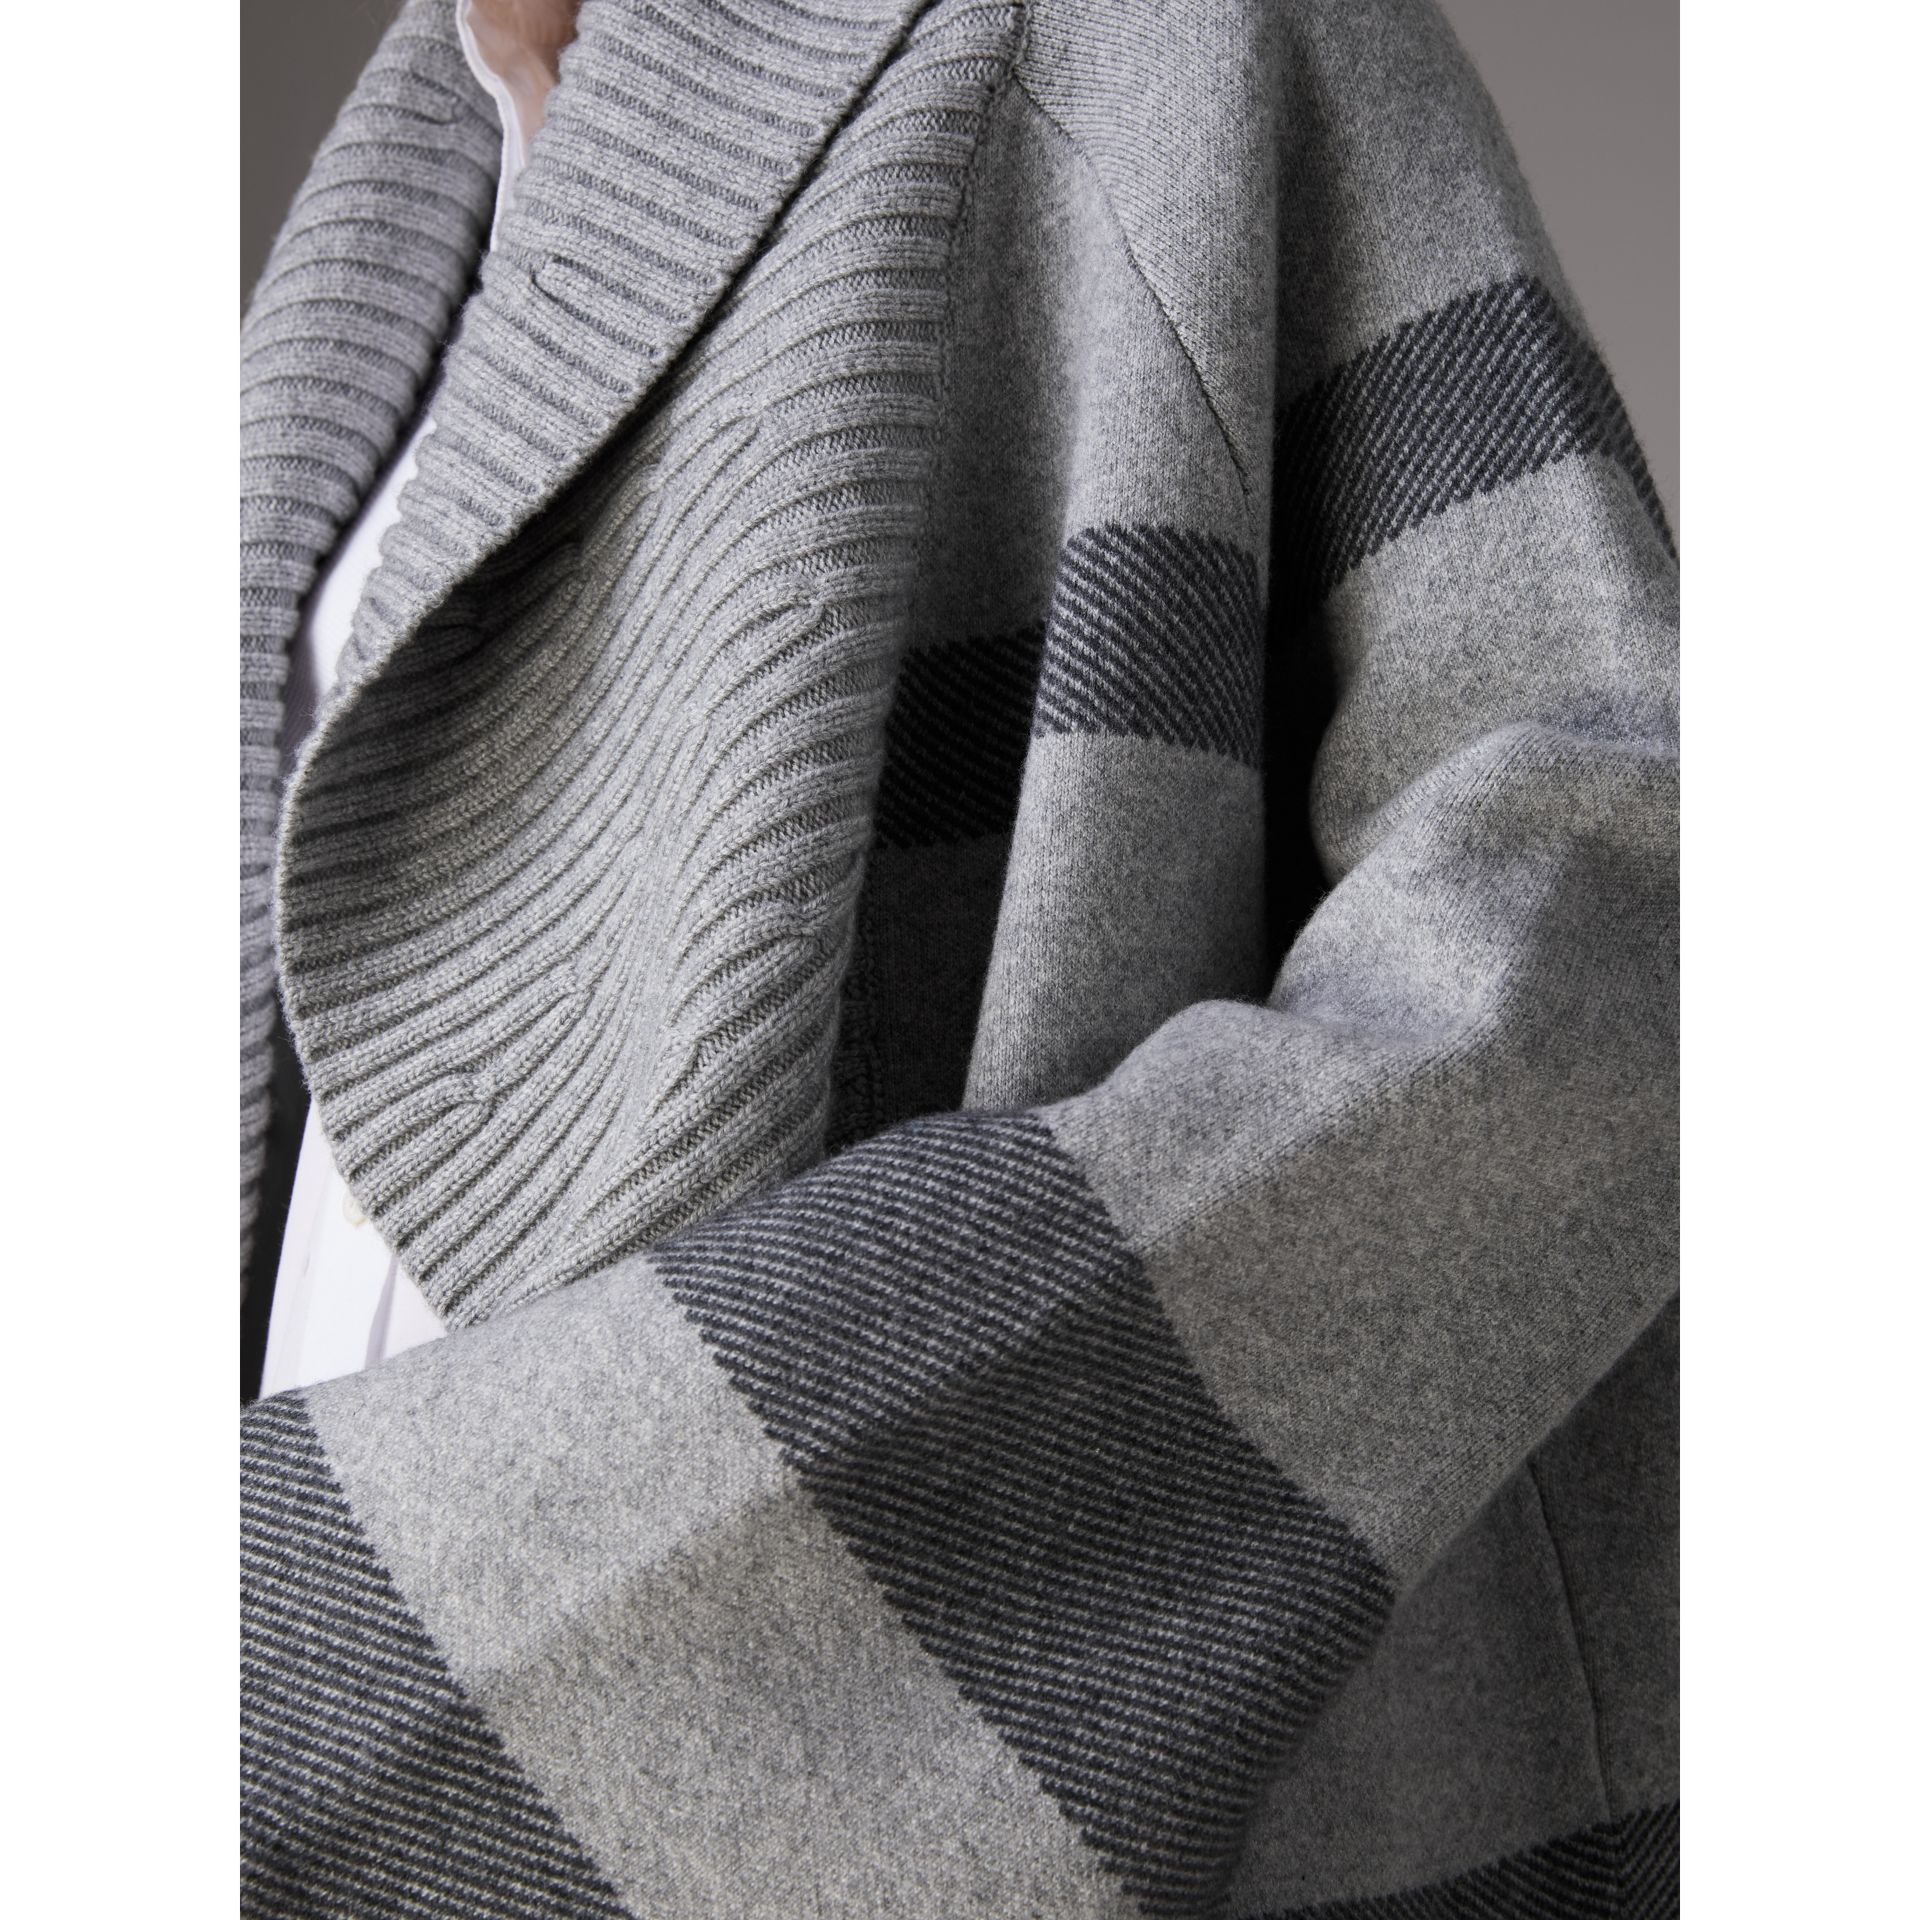 Check Wool Cashmere Blend Cardigan Coat in Pale Grey Melange - Women | Burberry United Kingdom - gallery image 1